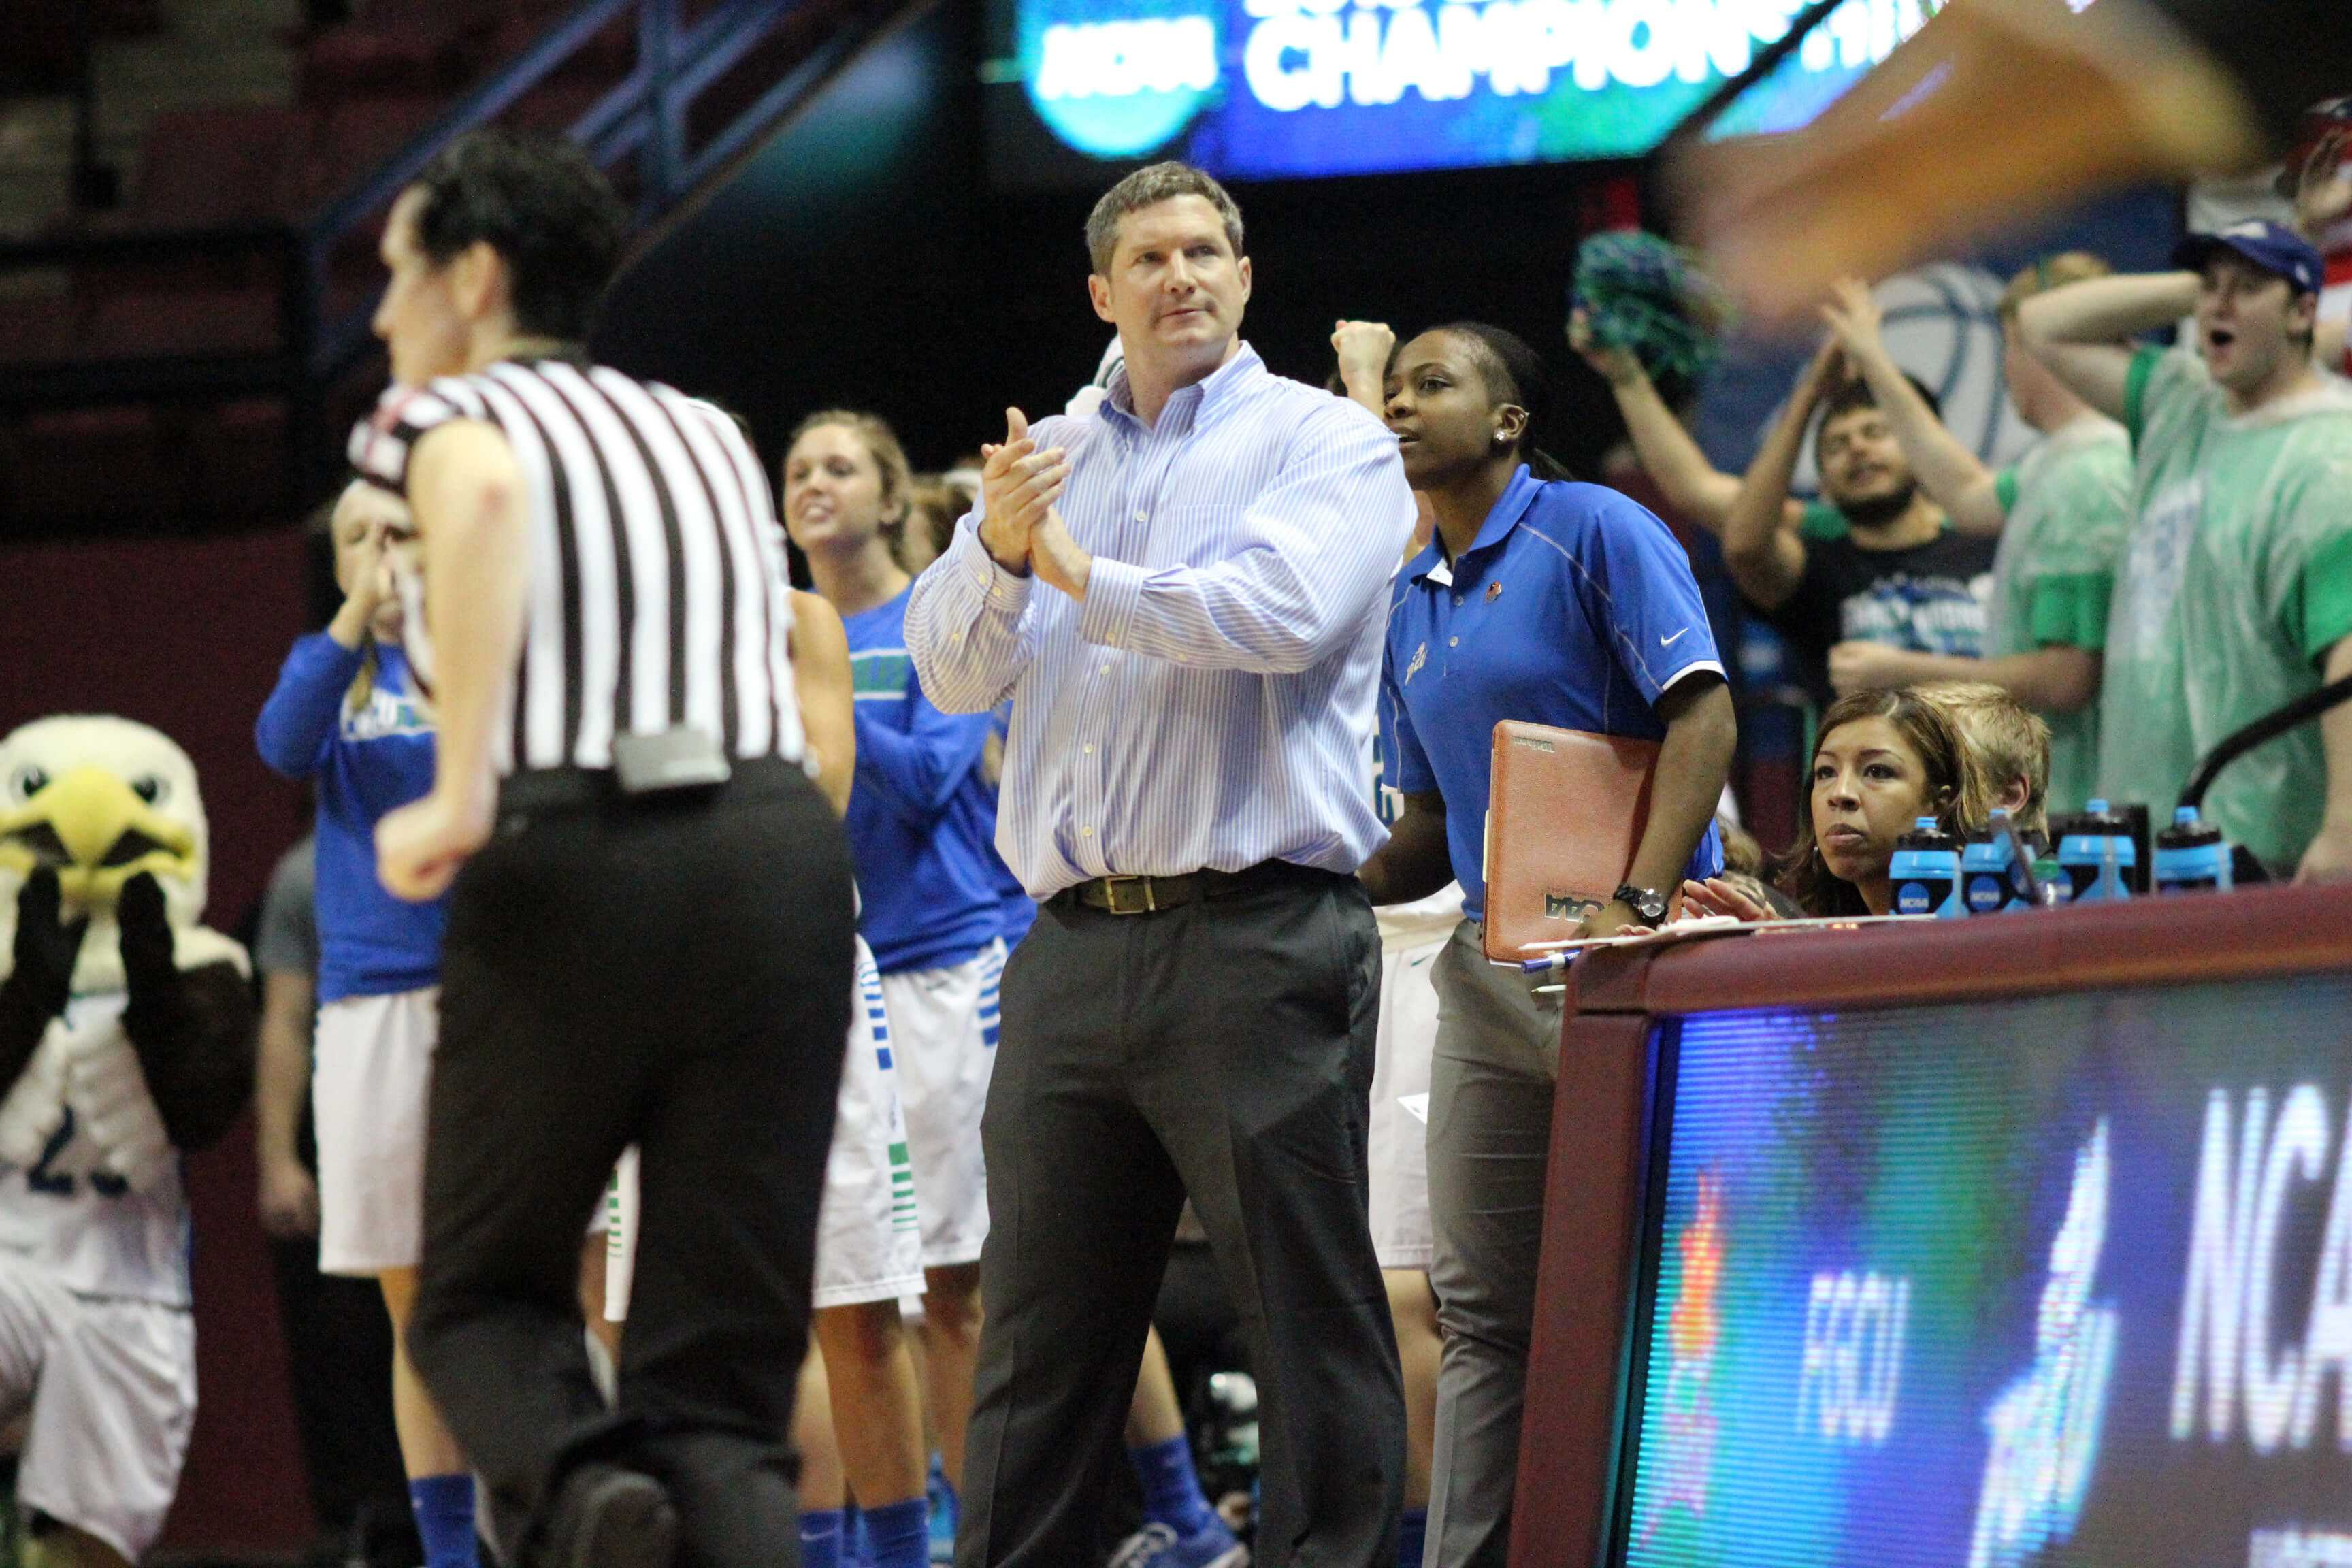 To the victors come the spoils: A look at how FGCU coaches' wallets are growing with continued success